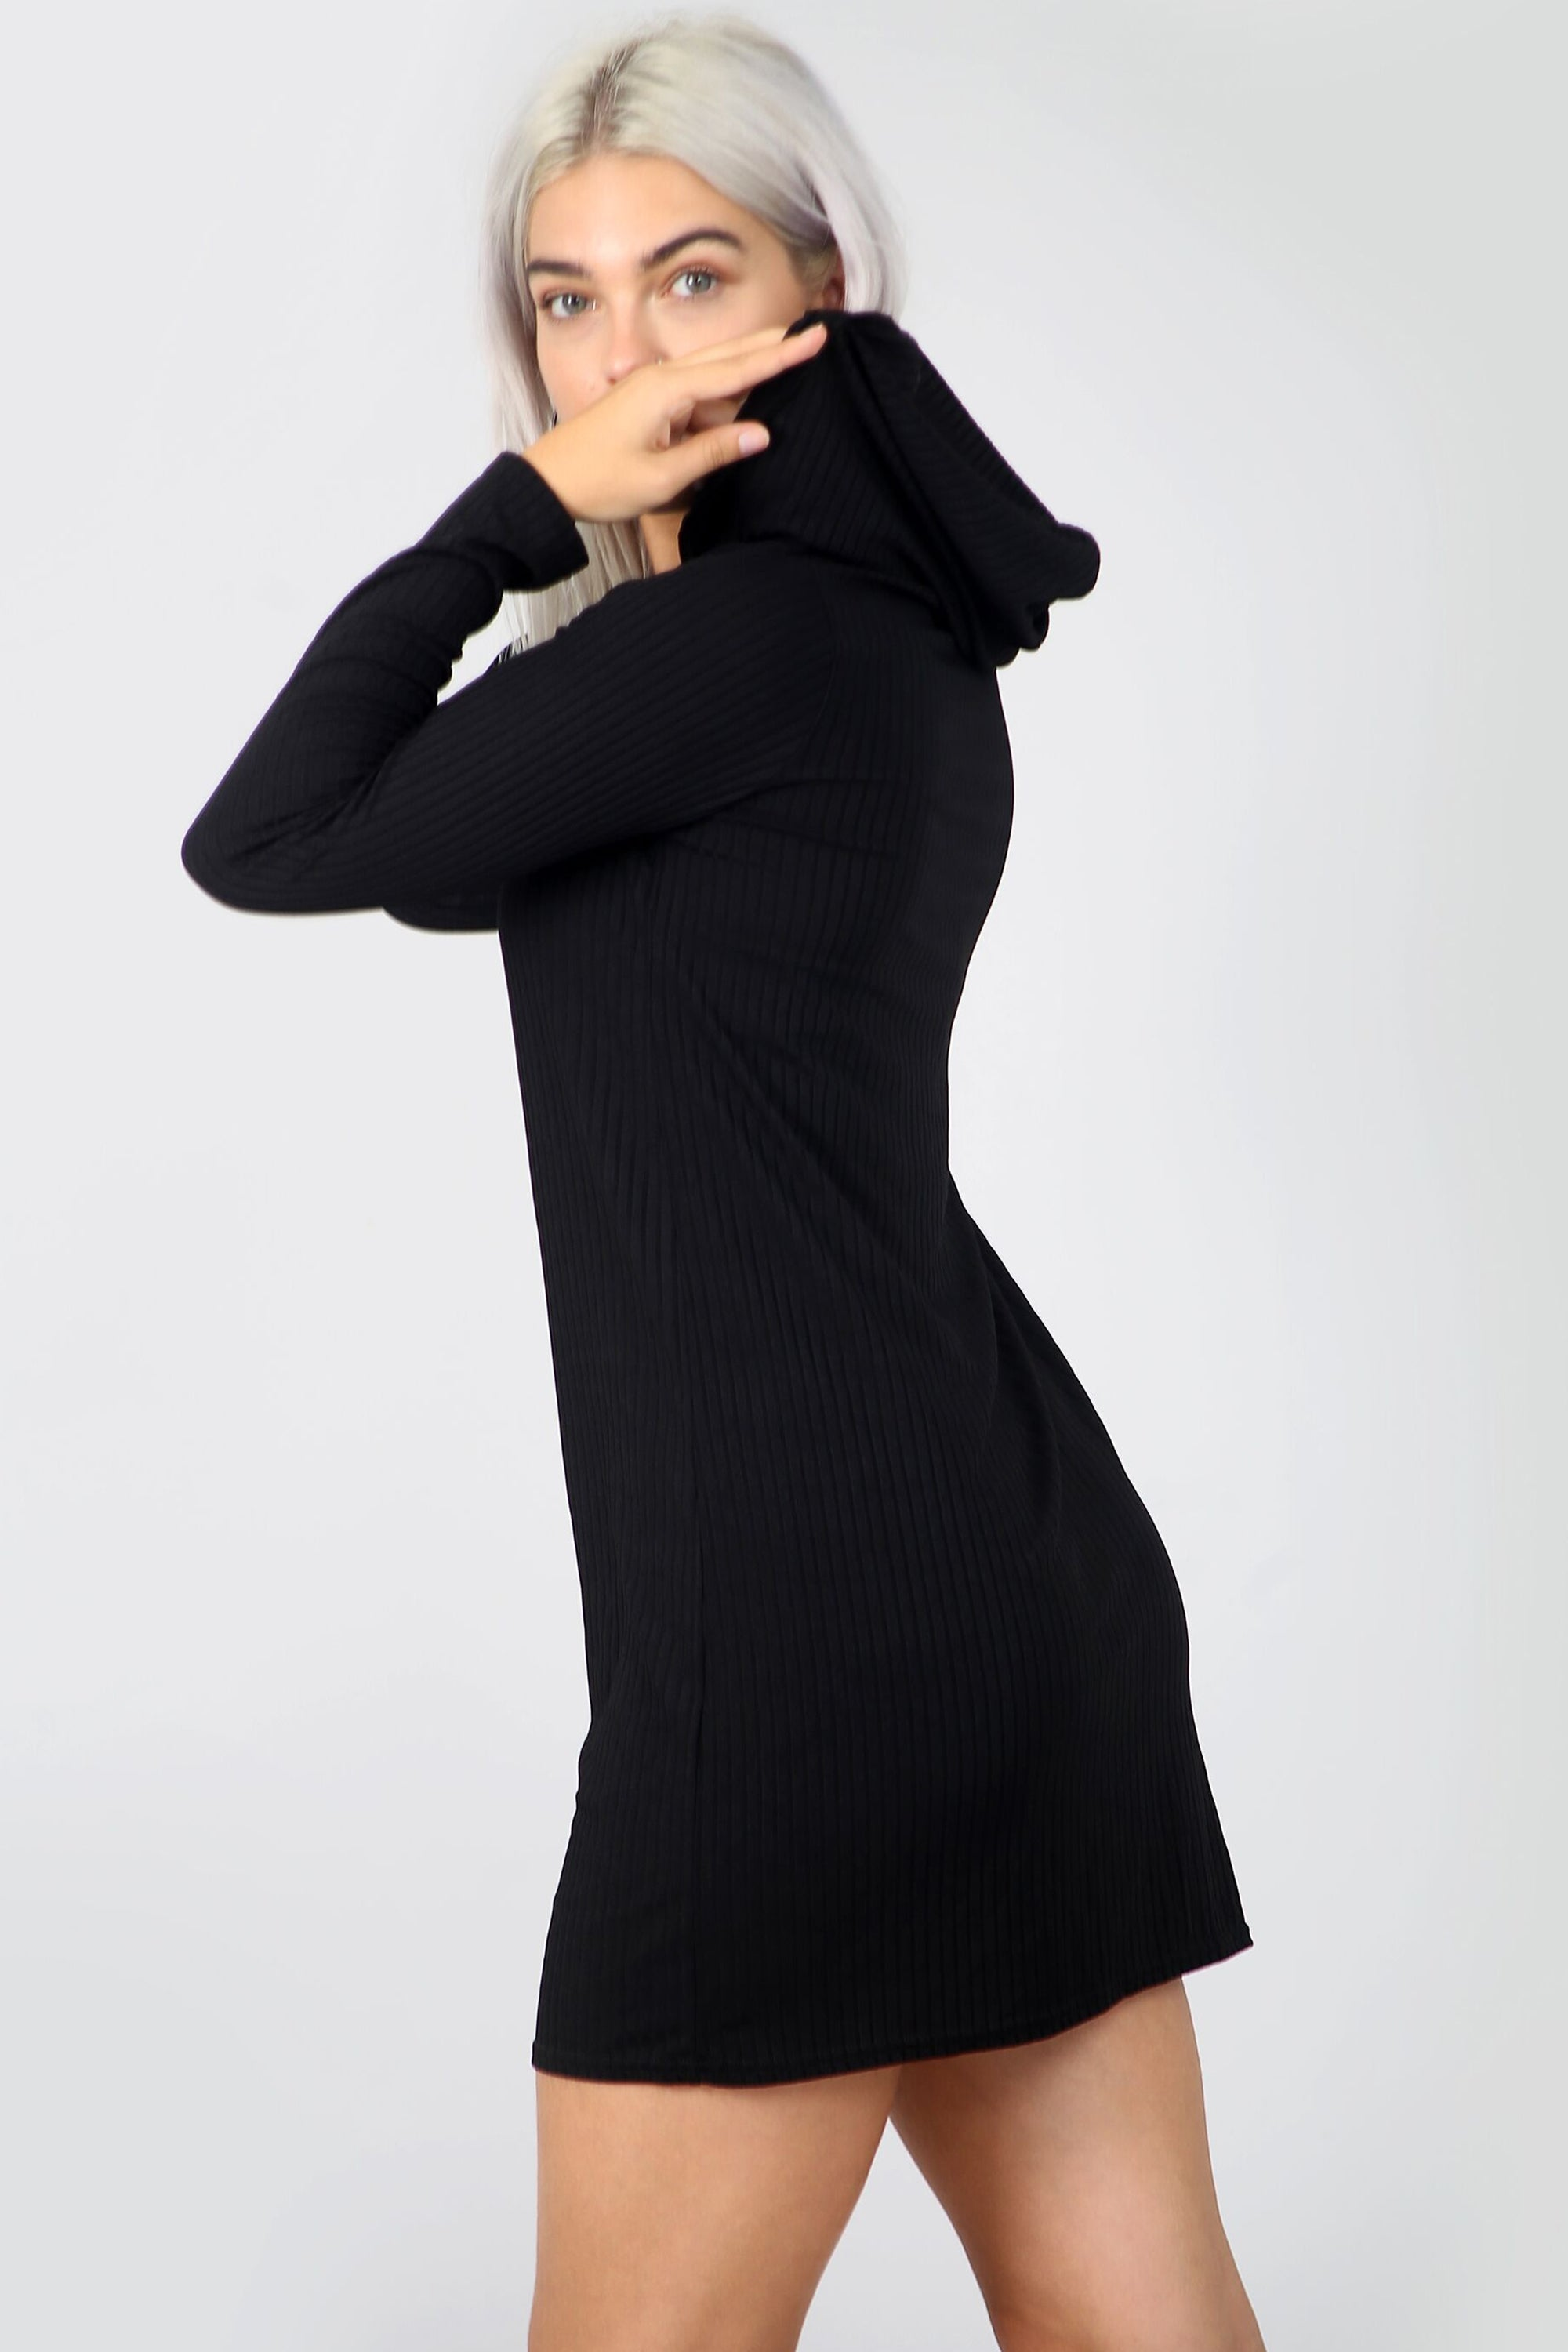 Long Sleeve Plunge Neck Black Ribbed Sweater Dress - bejealous-com